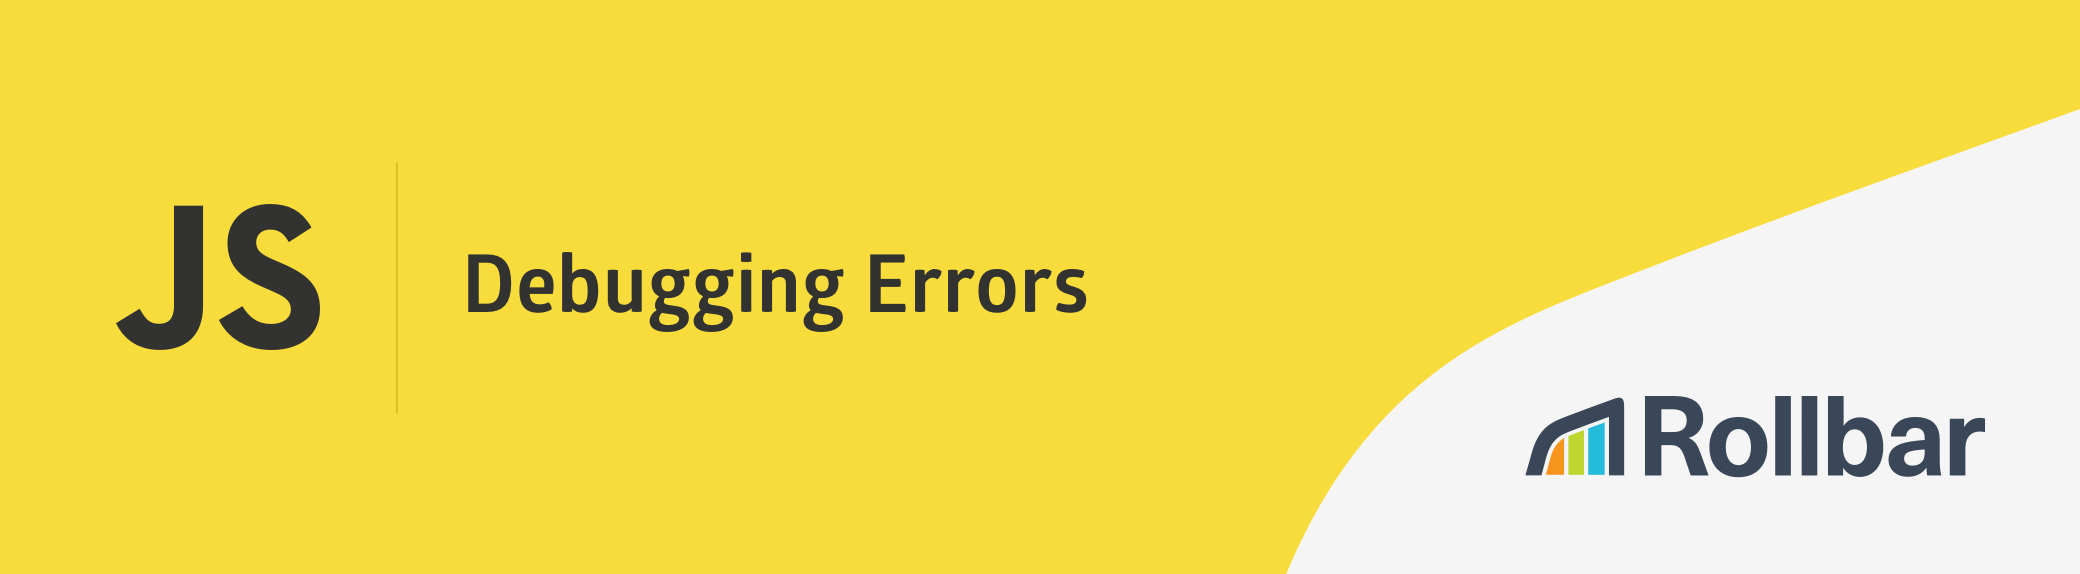 Javascript Debugging Errors